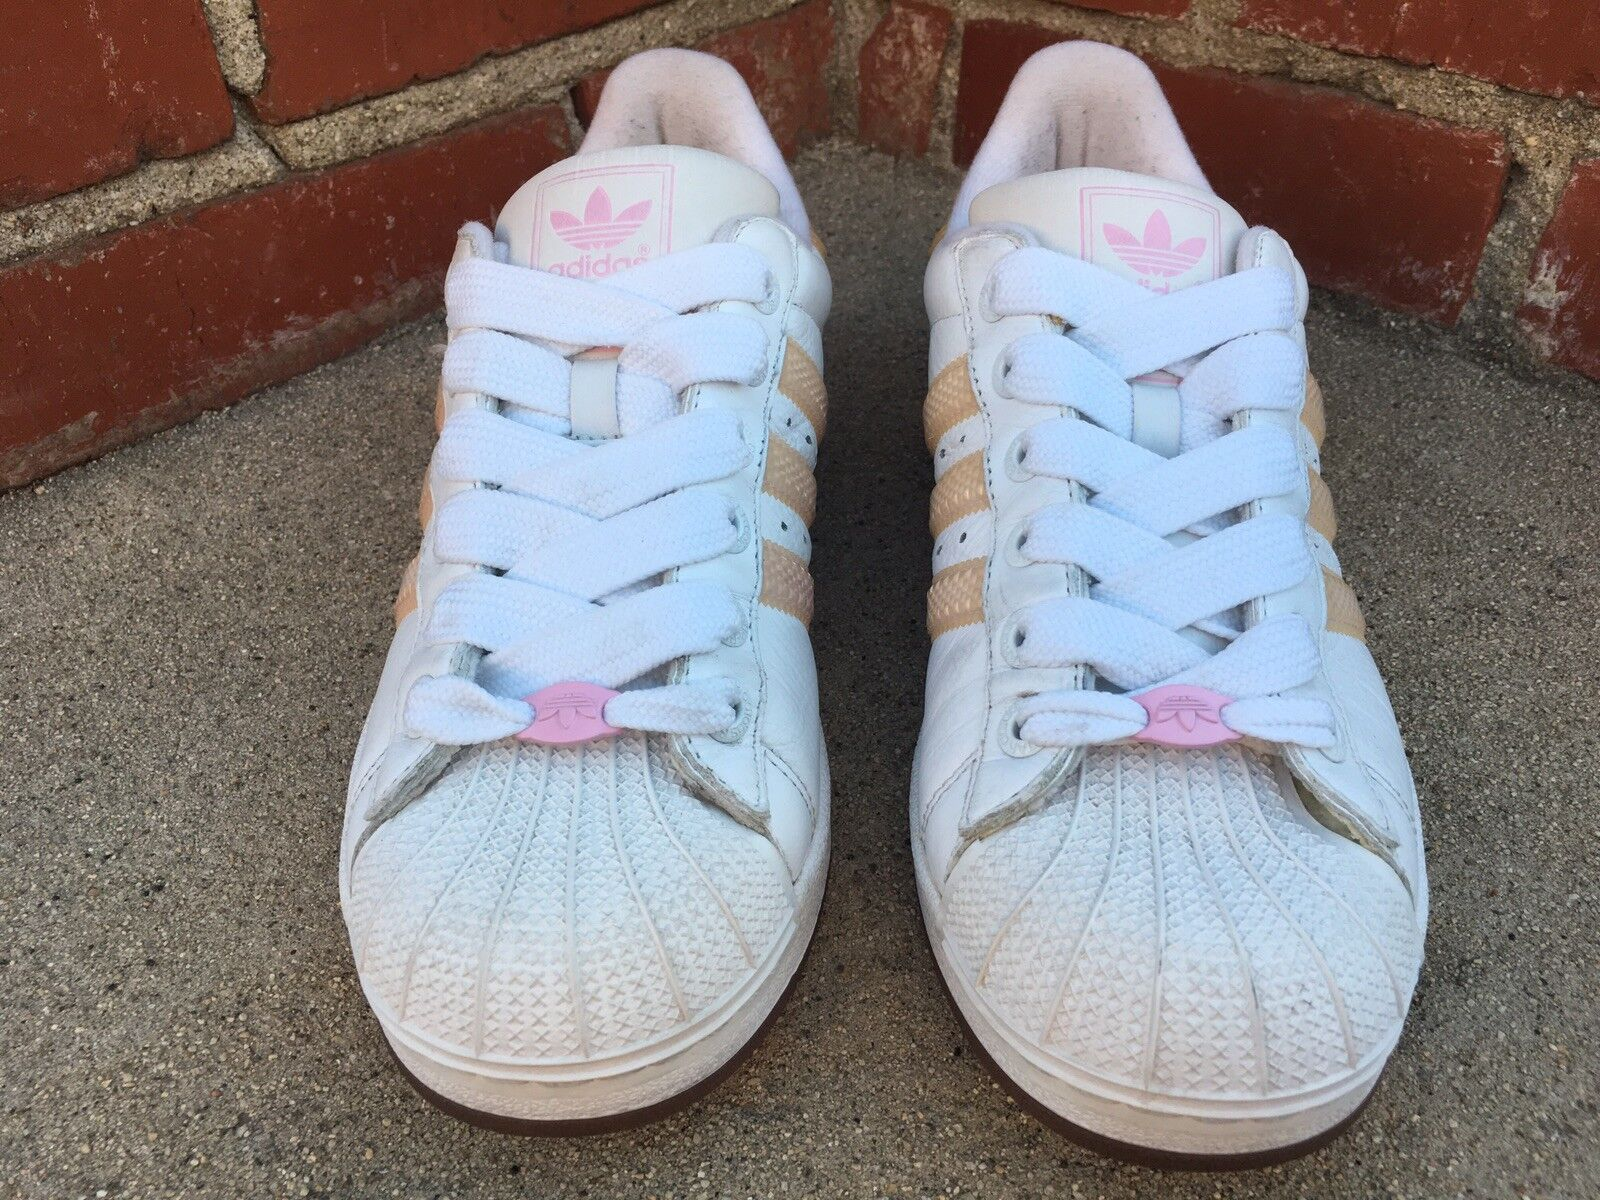 3bb0c38d3baa Rare 2003 Adidas Superstar II White w  Peach Stripe Sneaker 041227 ...